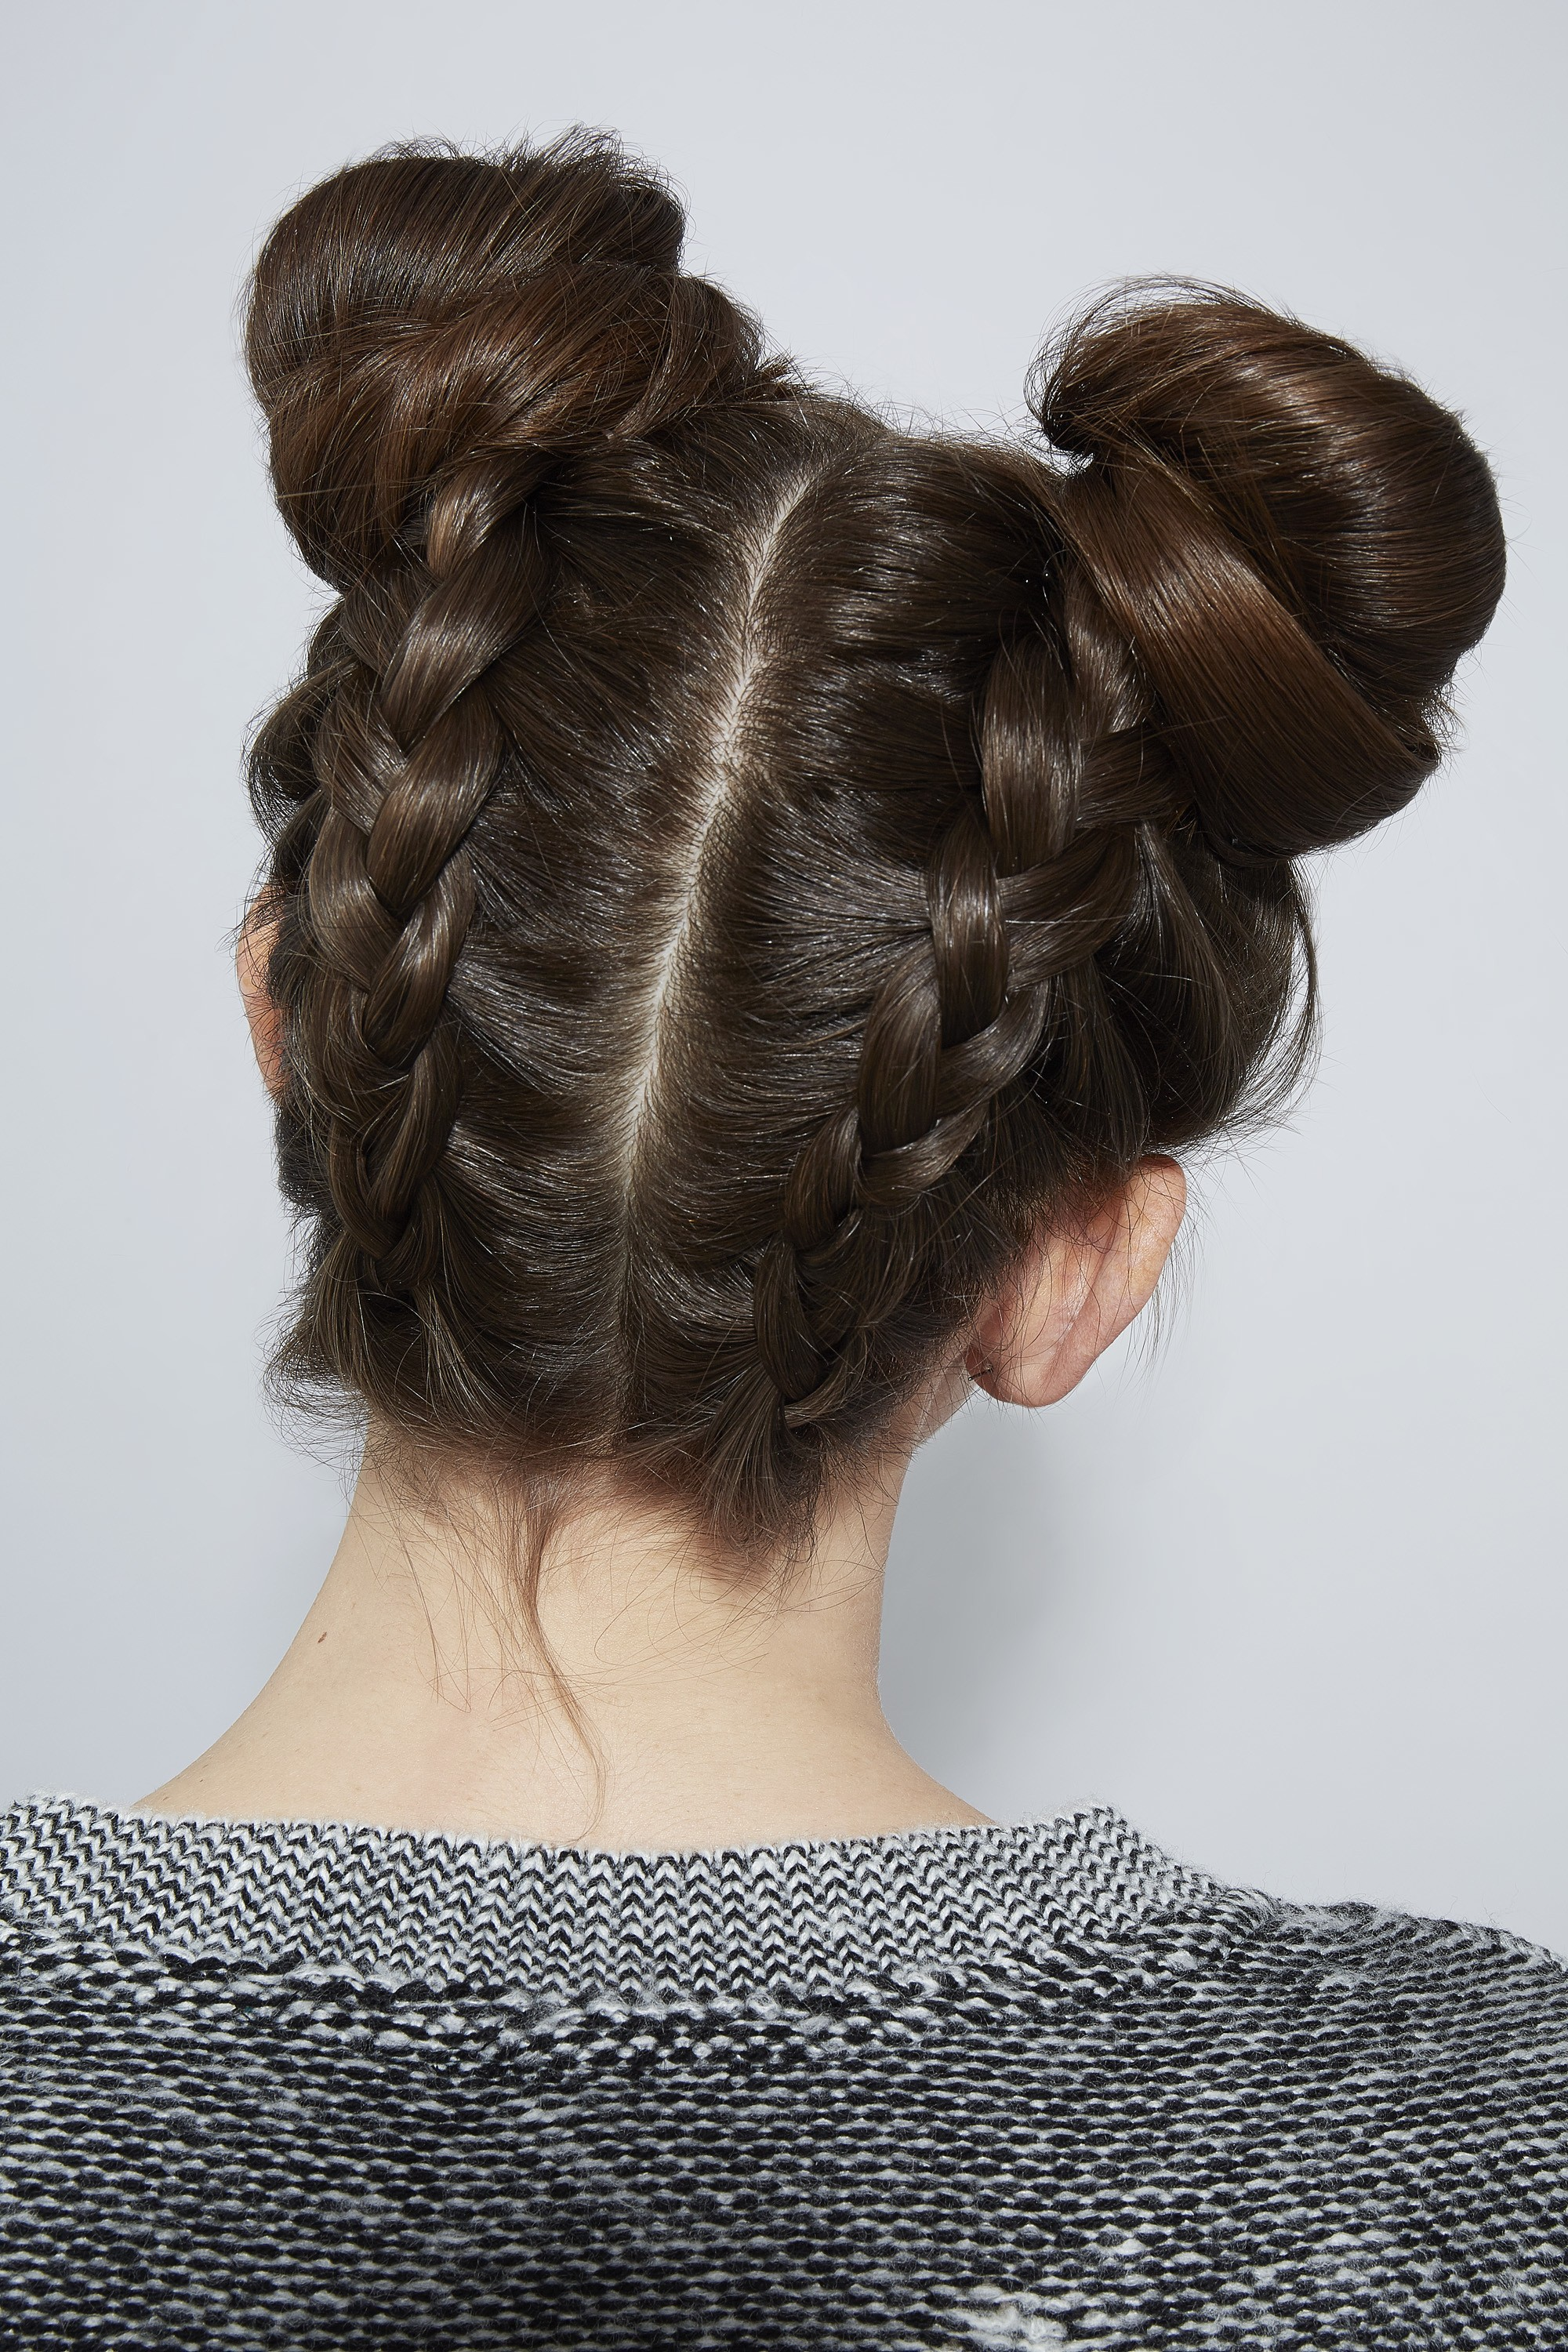 Updos with braids: Back shot of a woman with upside down Dutch braided space buns.